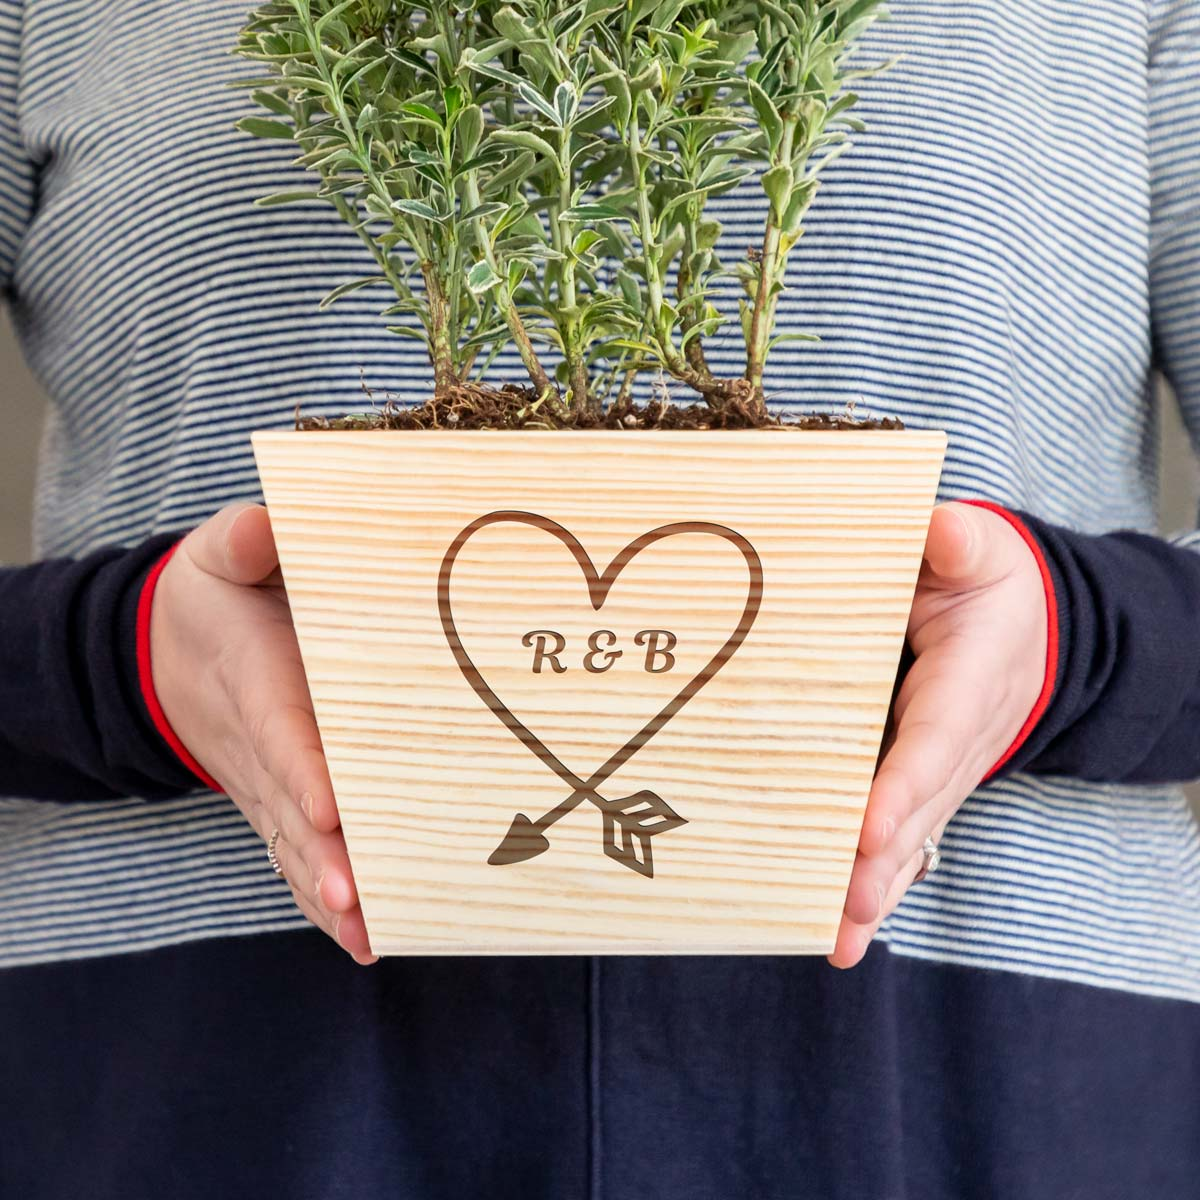 Personalised Wooden Planter With Heart